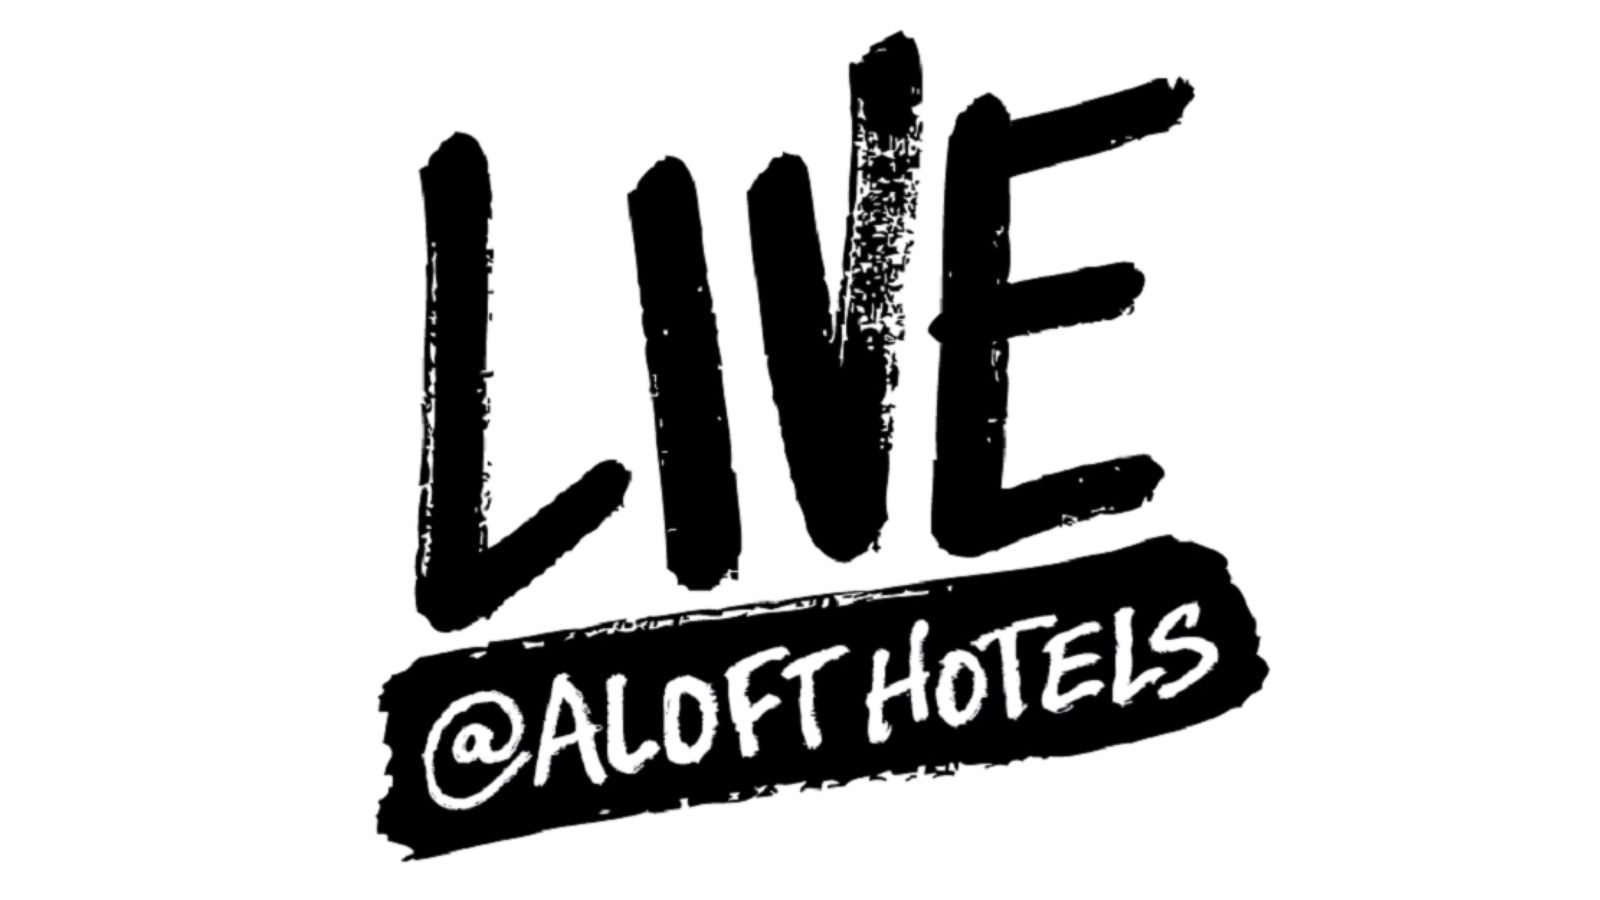 Live at Aloft Hotels